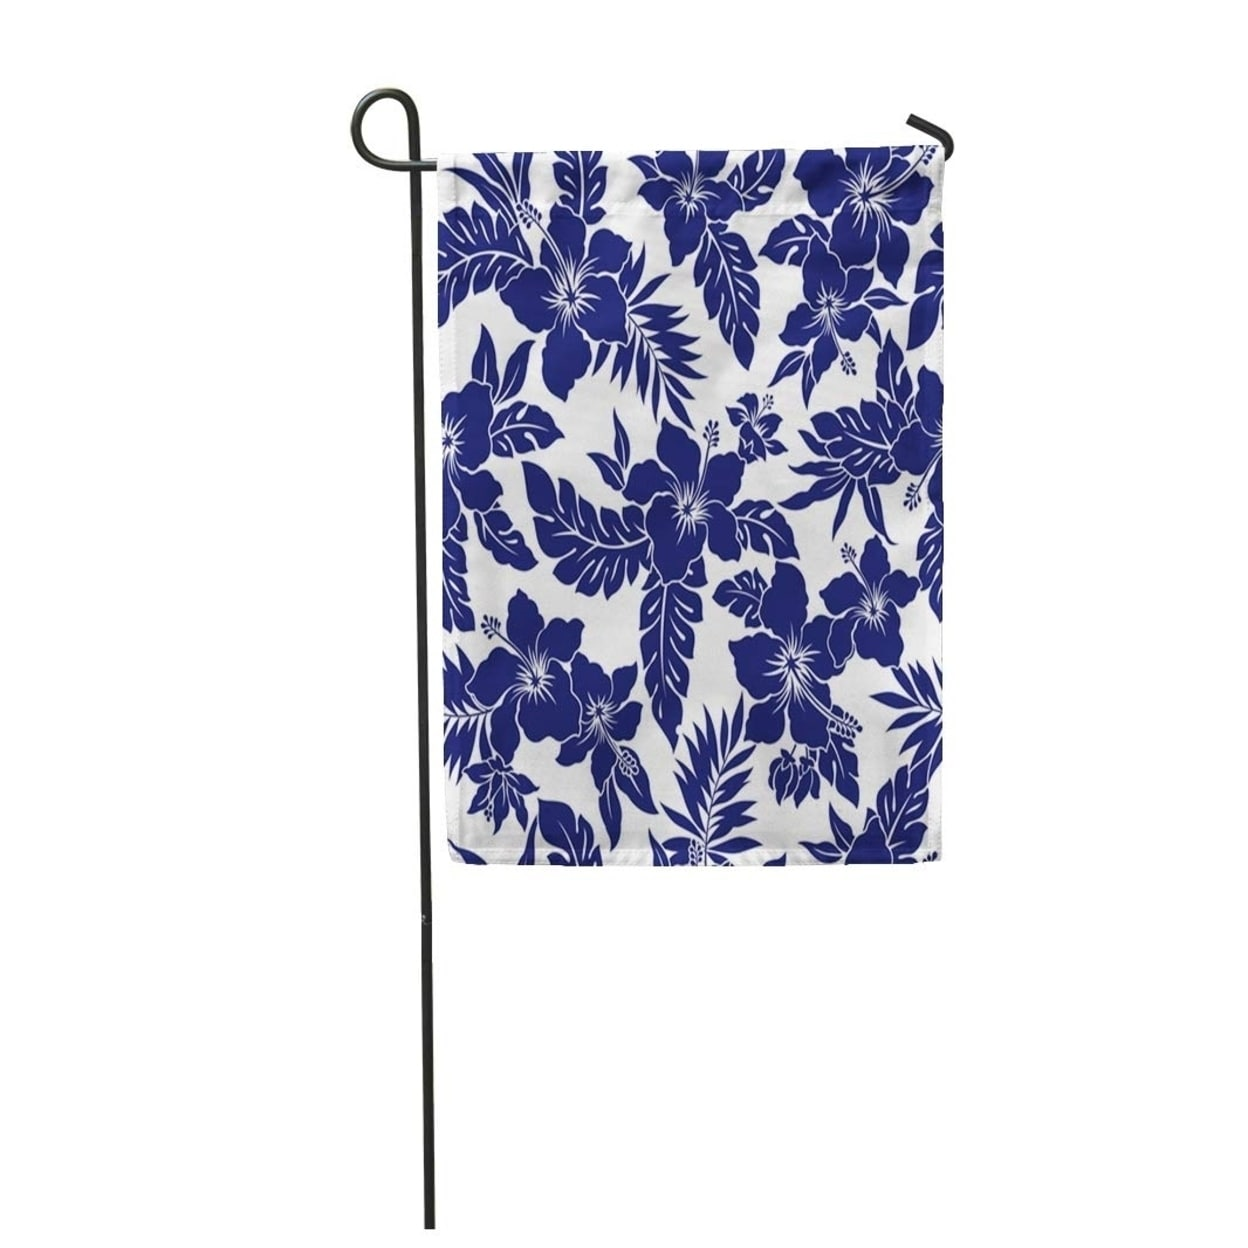 Simple Tropical Flower Pattern Drawing Hibiscus Leaf Floral Aloha Beautiful Garden Flag Decorative Flag House Banner Overstock 31393264